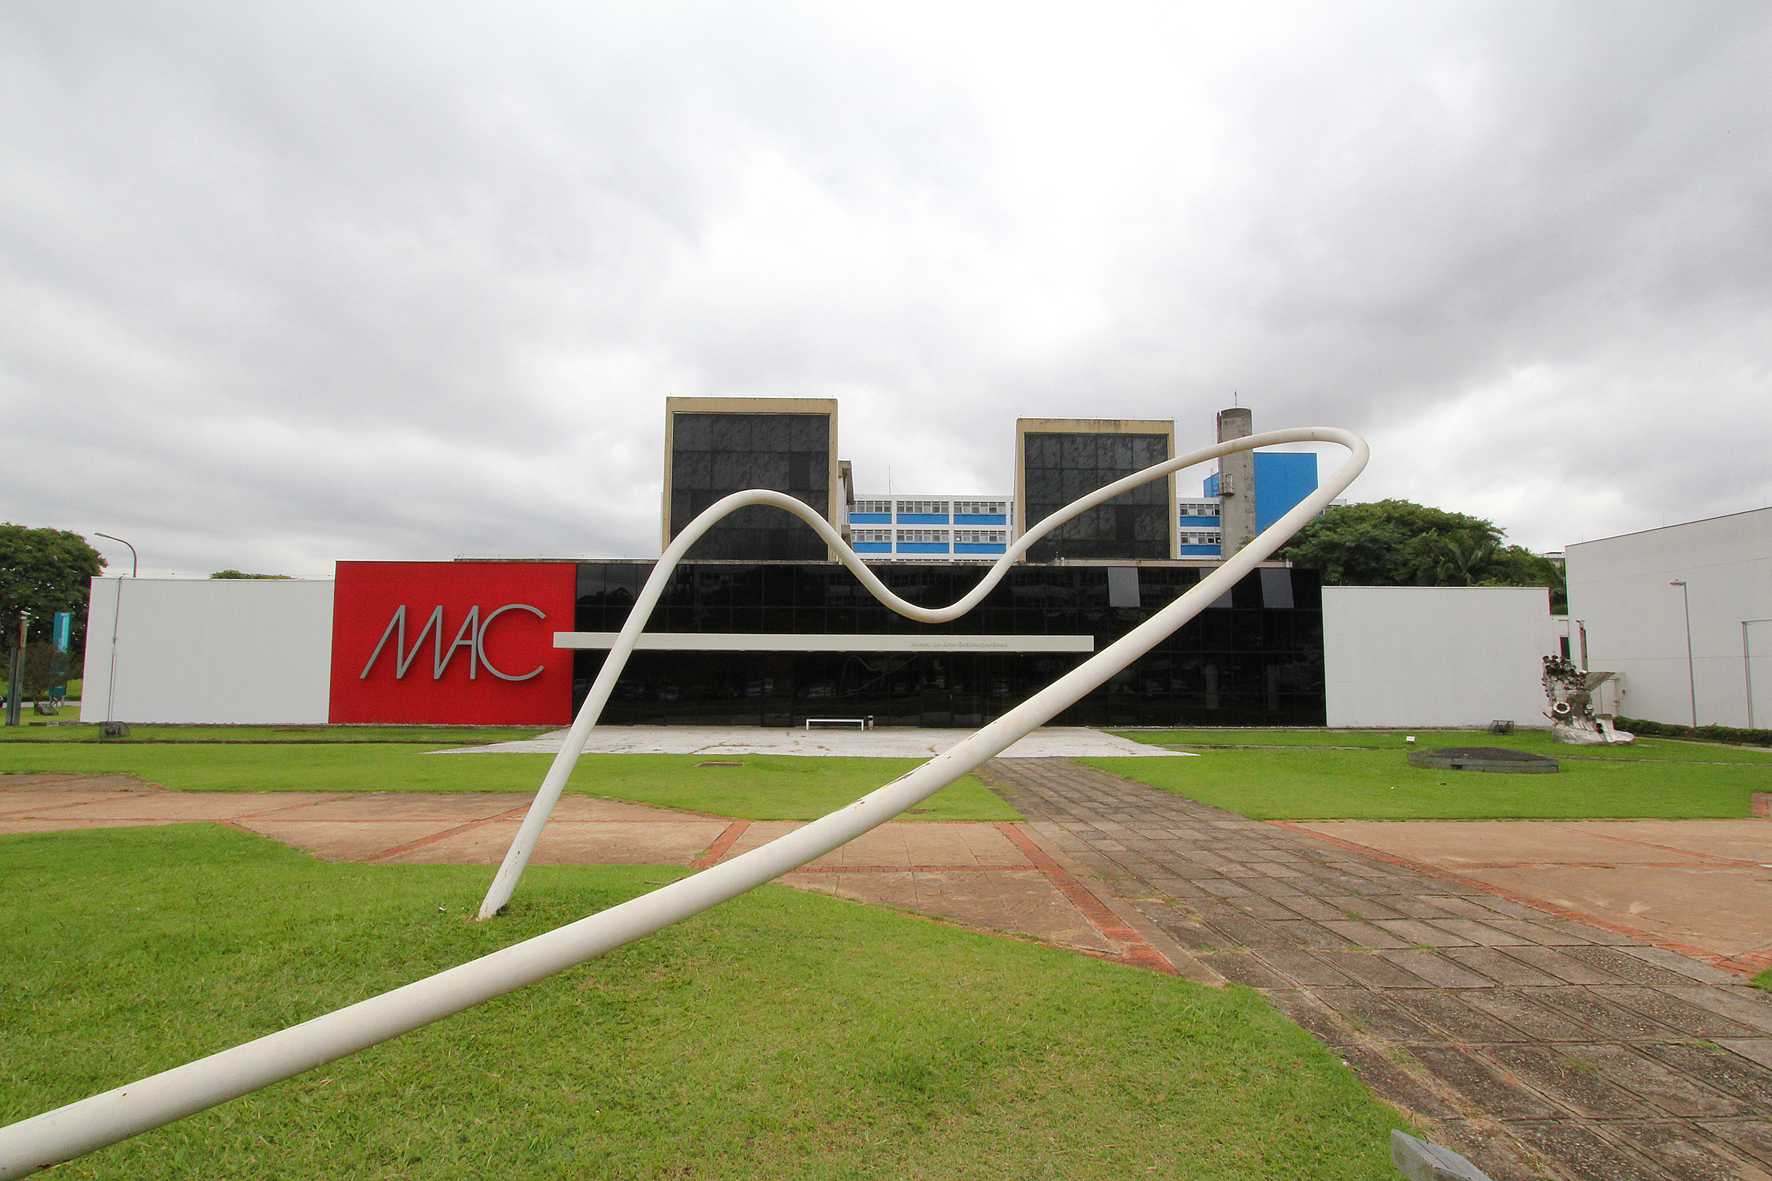 Museum of Contemporary Art, University of São Paulo, Brazil